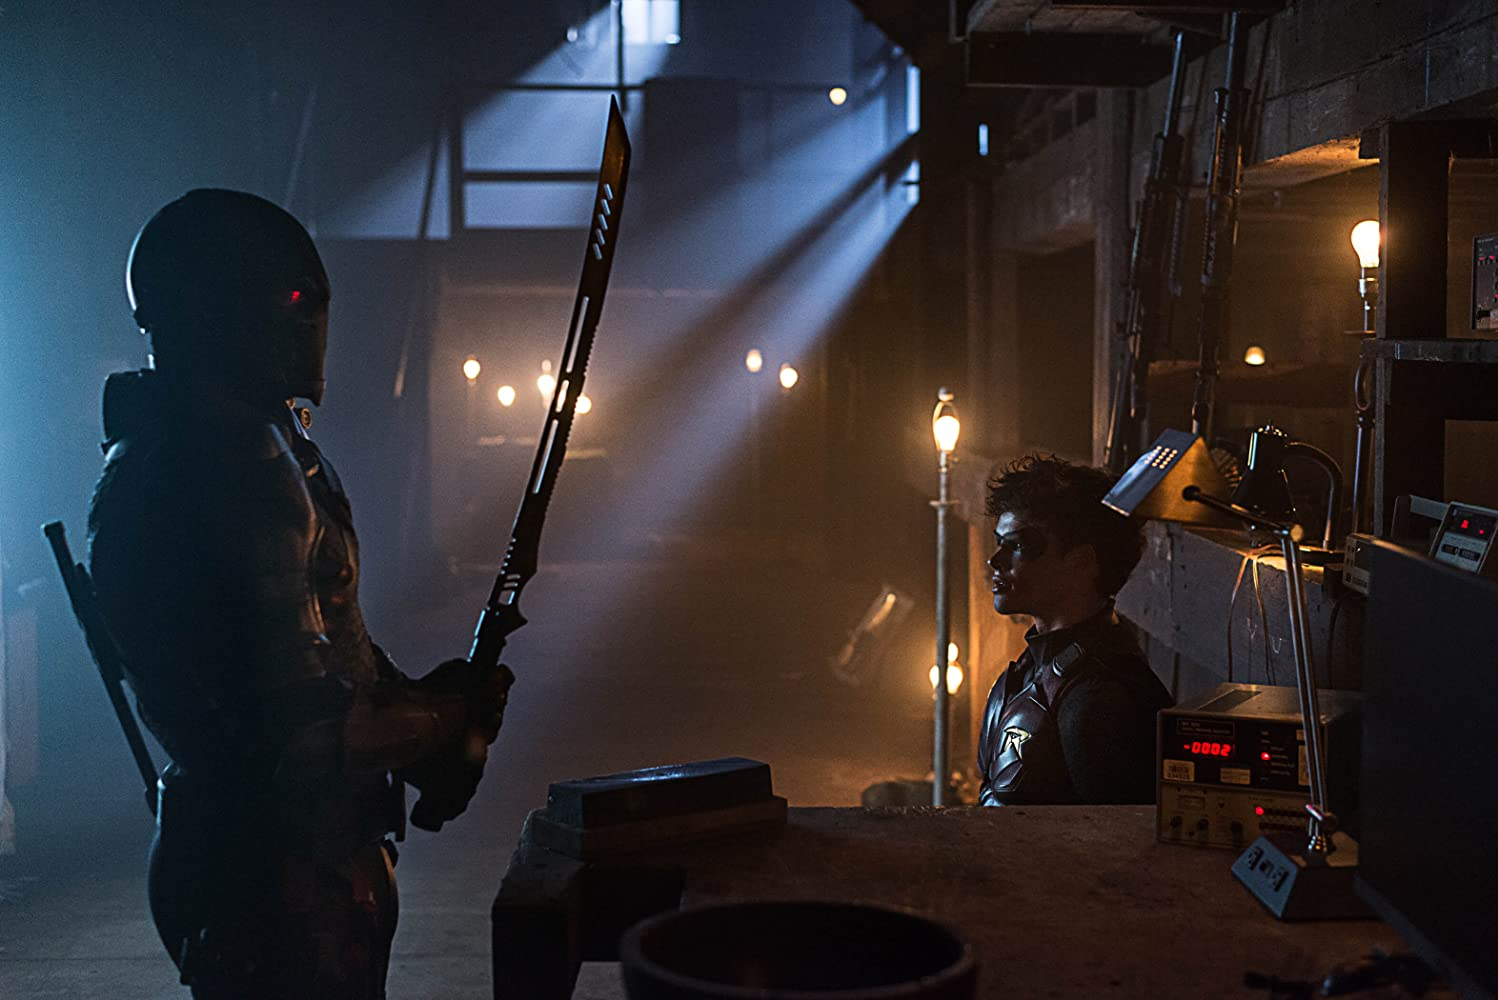 Esai Morales and Curran Walters in Titans (2018)